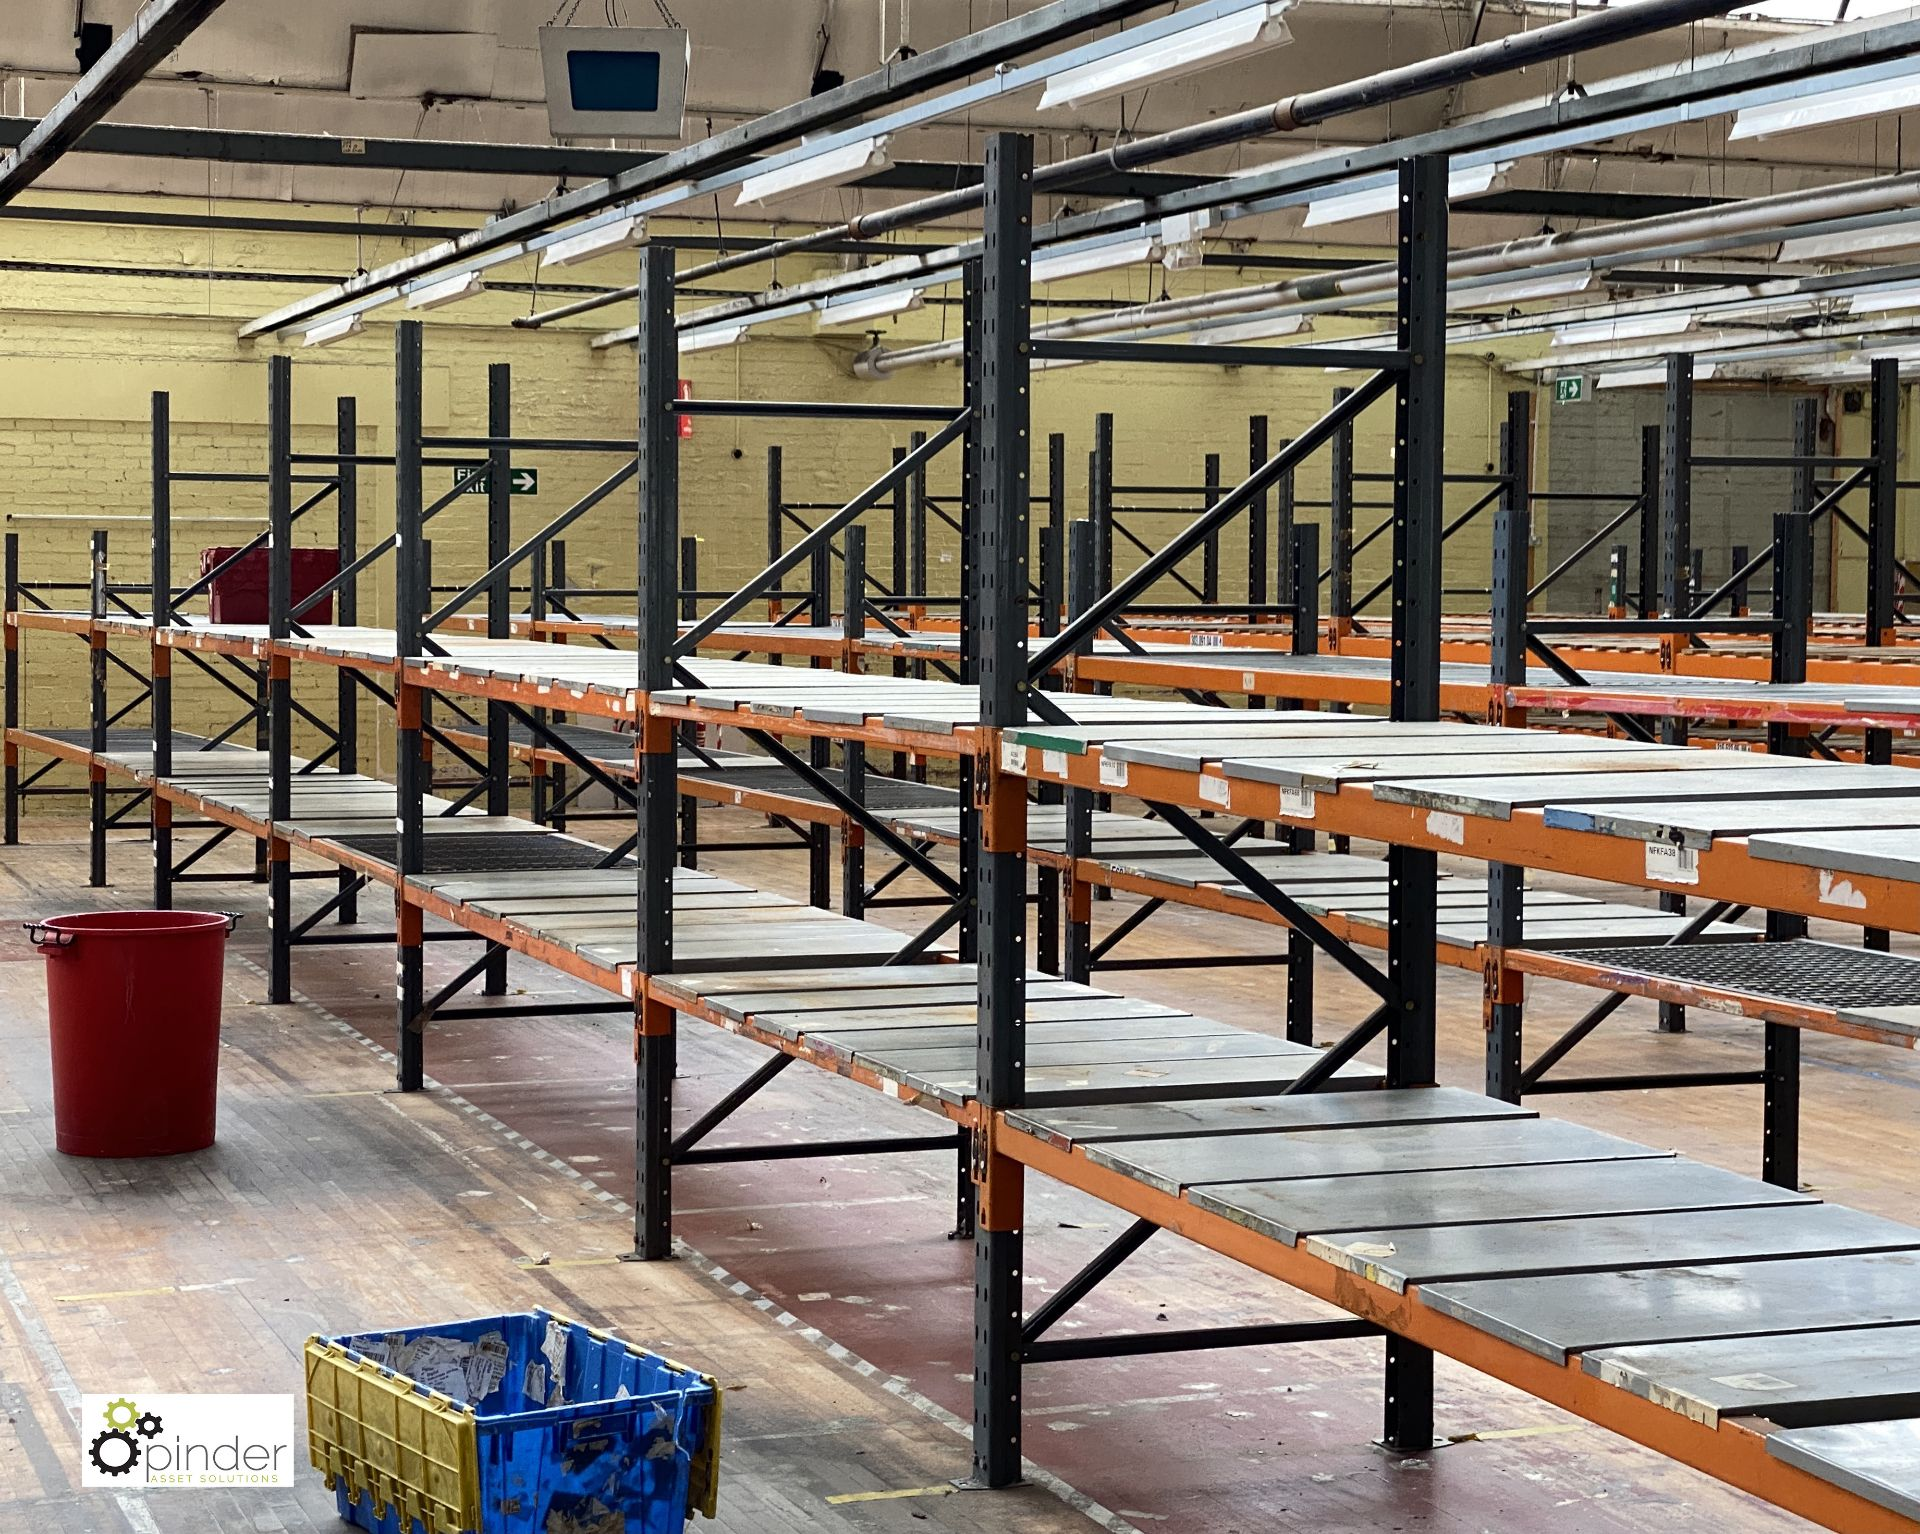 11 bays Dexion Speedlock boltless Racking, comprising 9 uprights 2440mm x 910mm, 3 uprights 1835mm x - Image 5 of 5